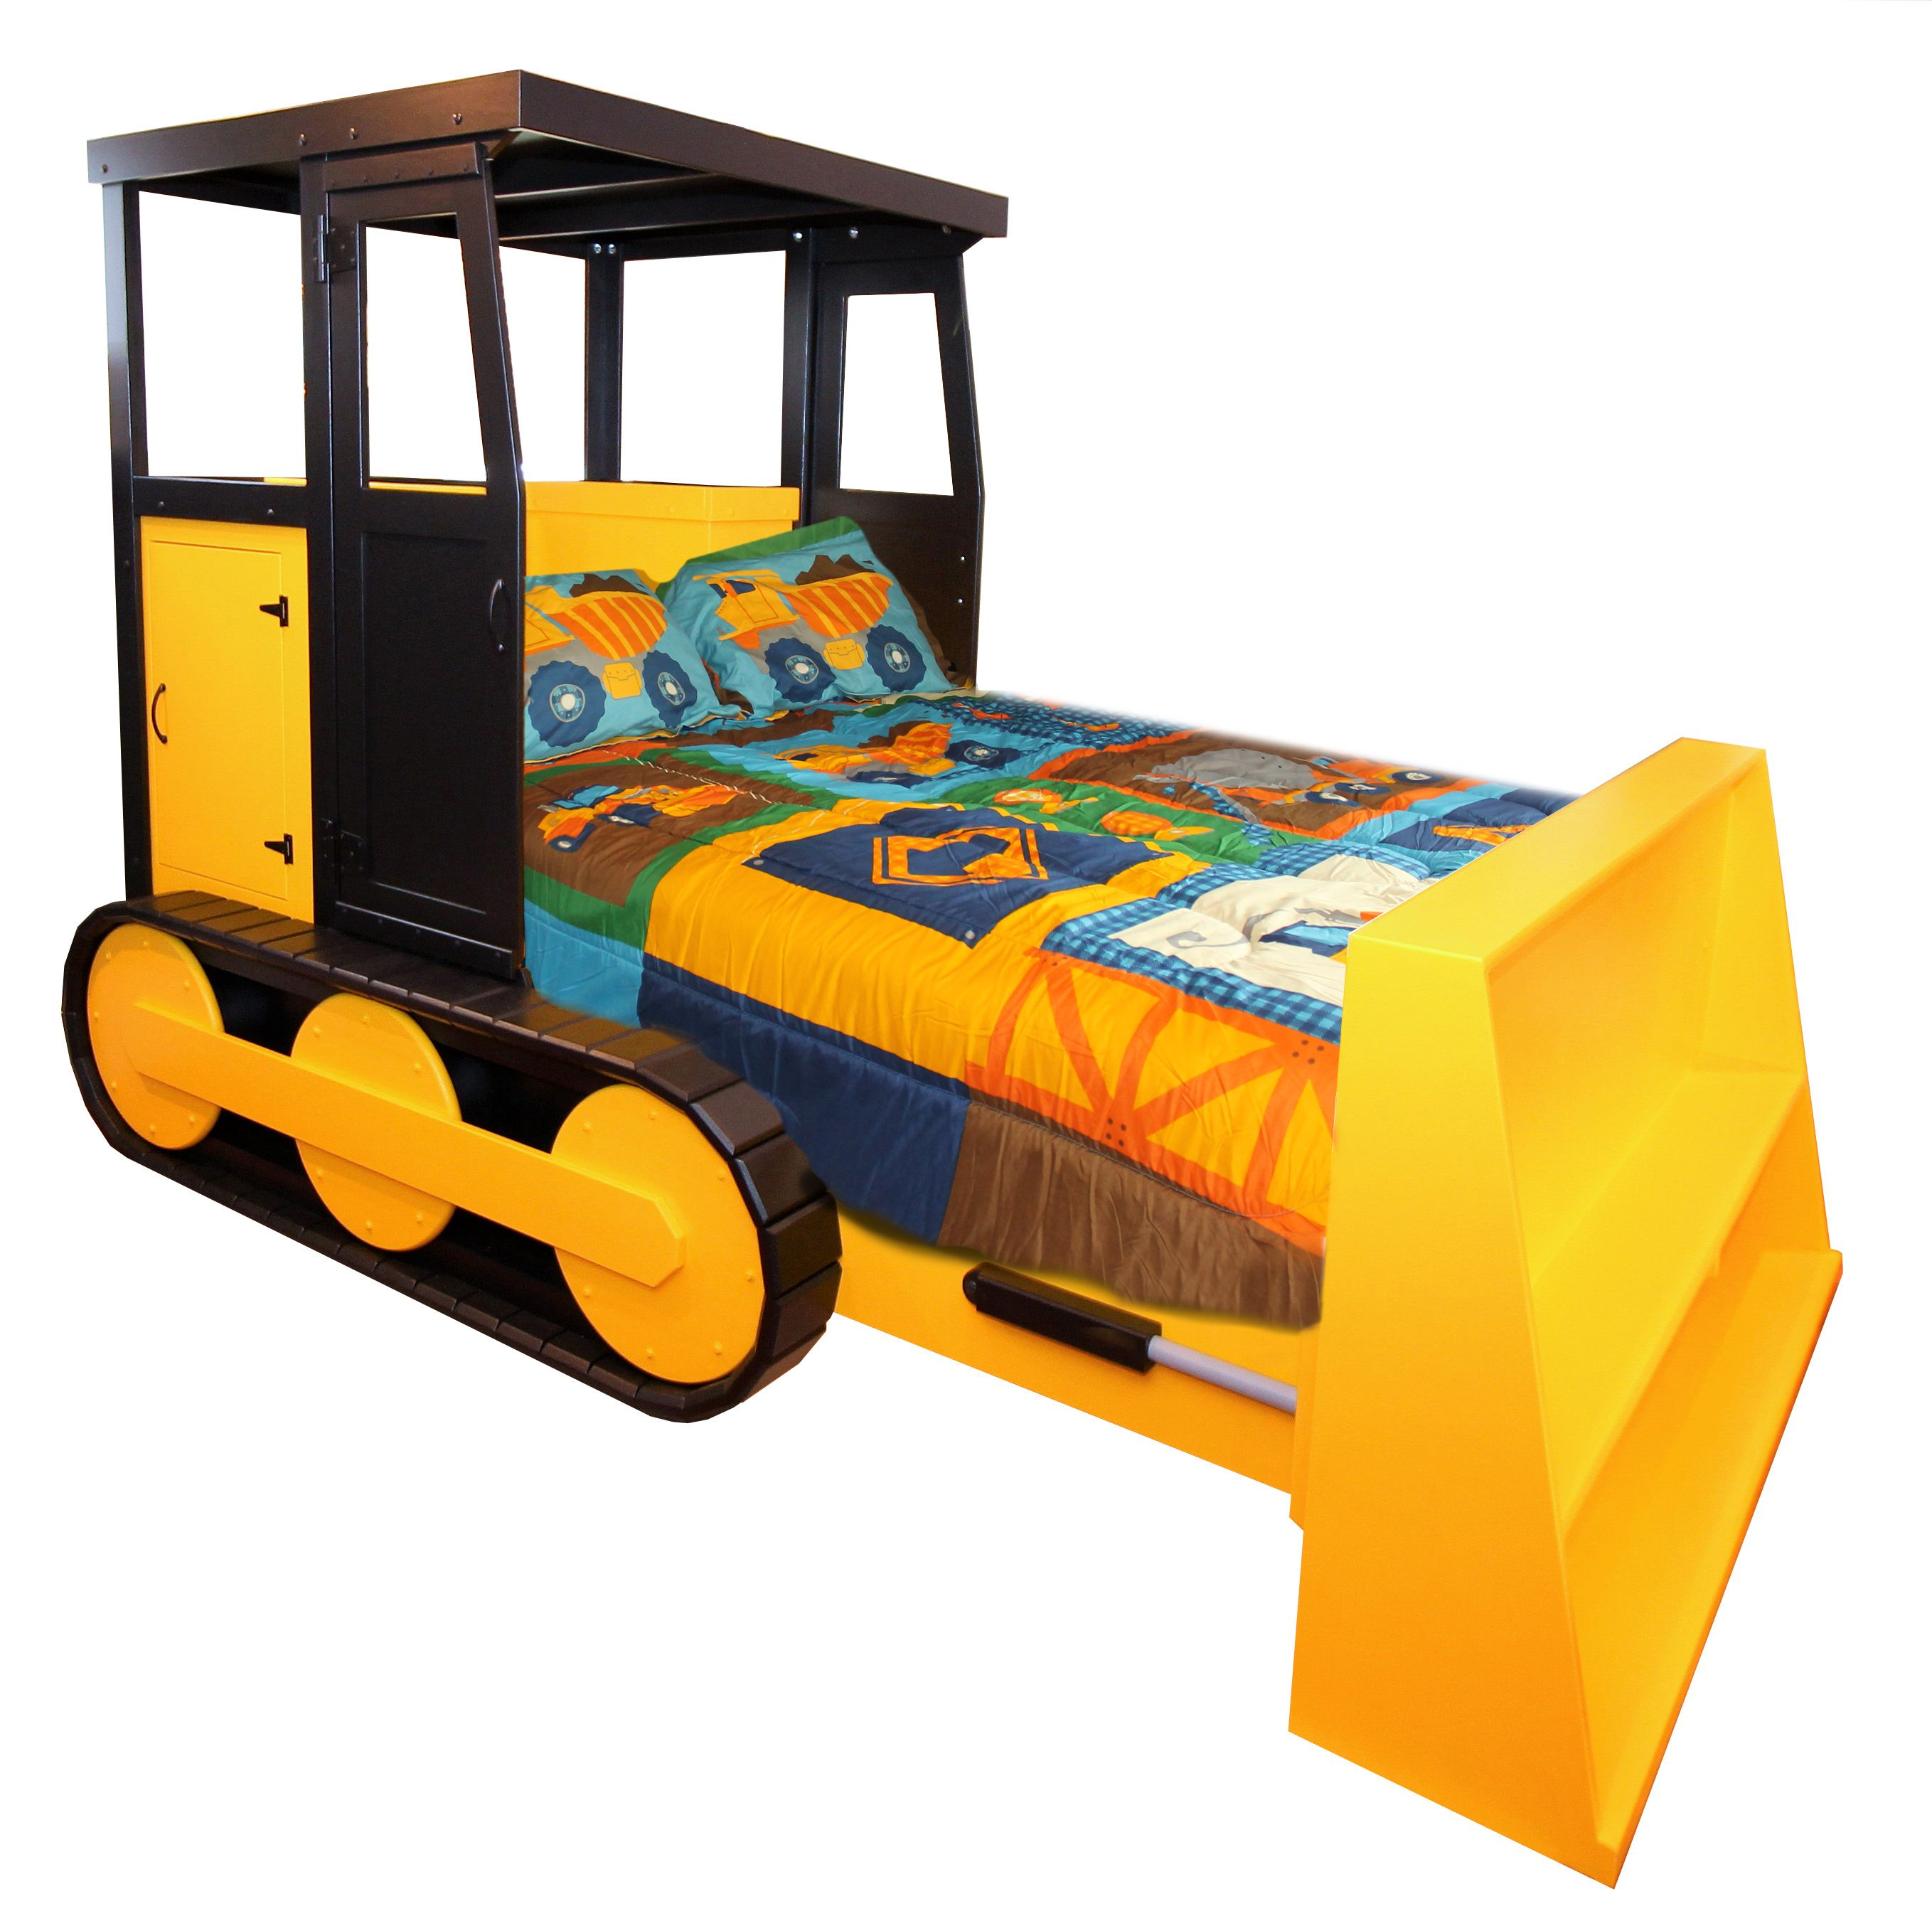 Buy a Hand Made Bulldozer Bed For Full Size Mattress Set made to